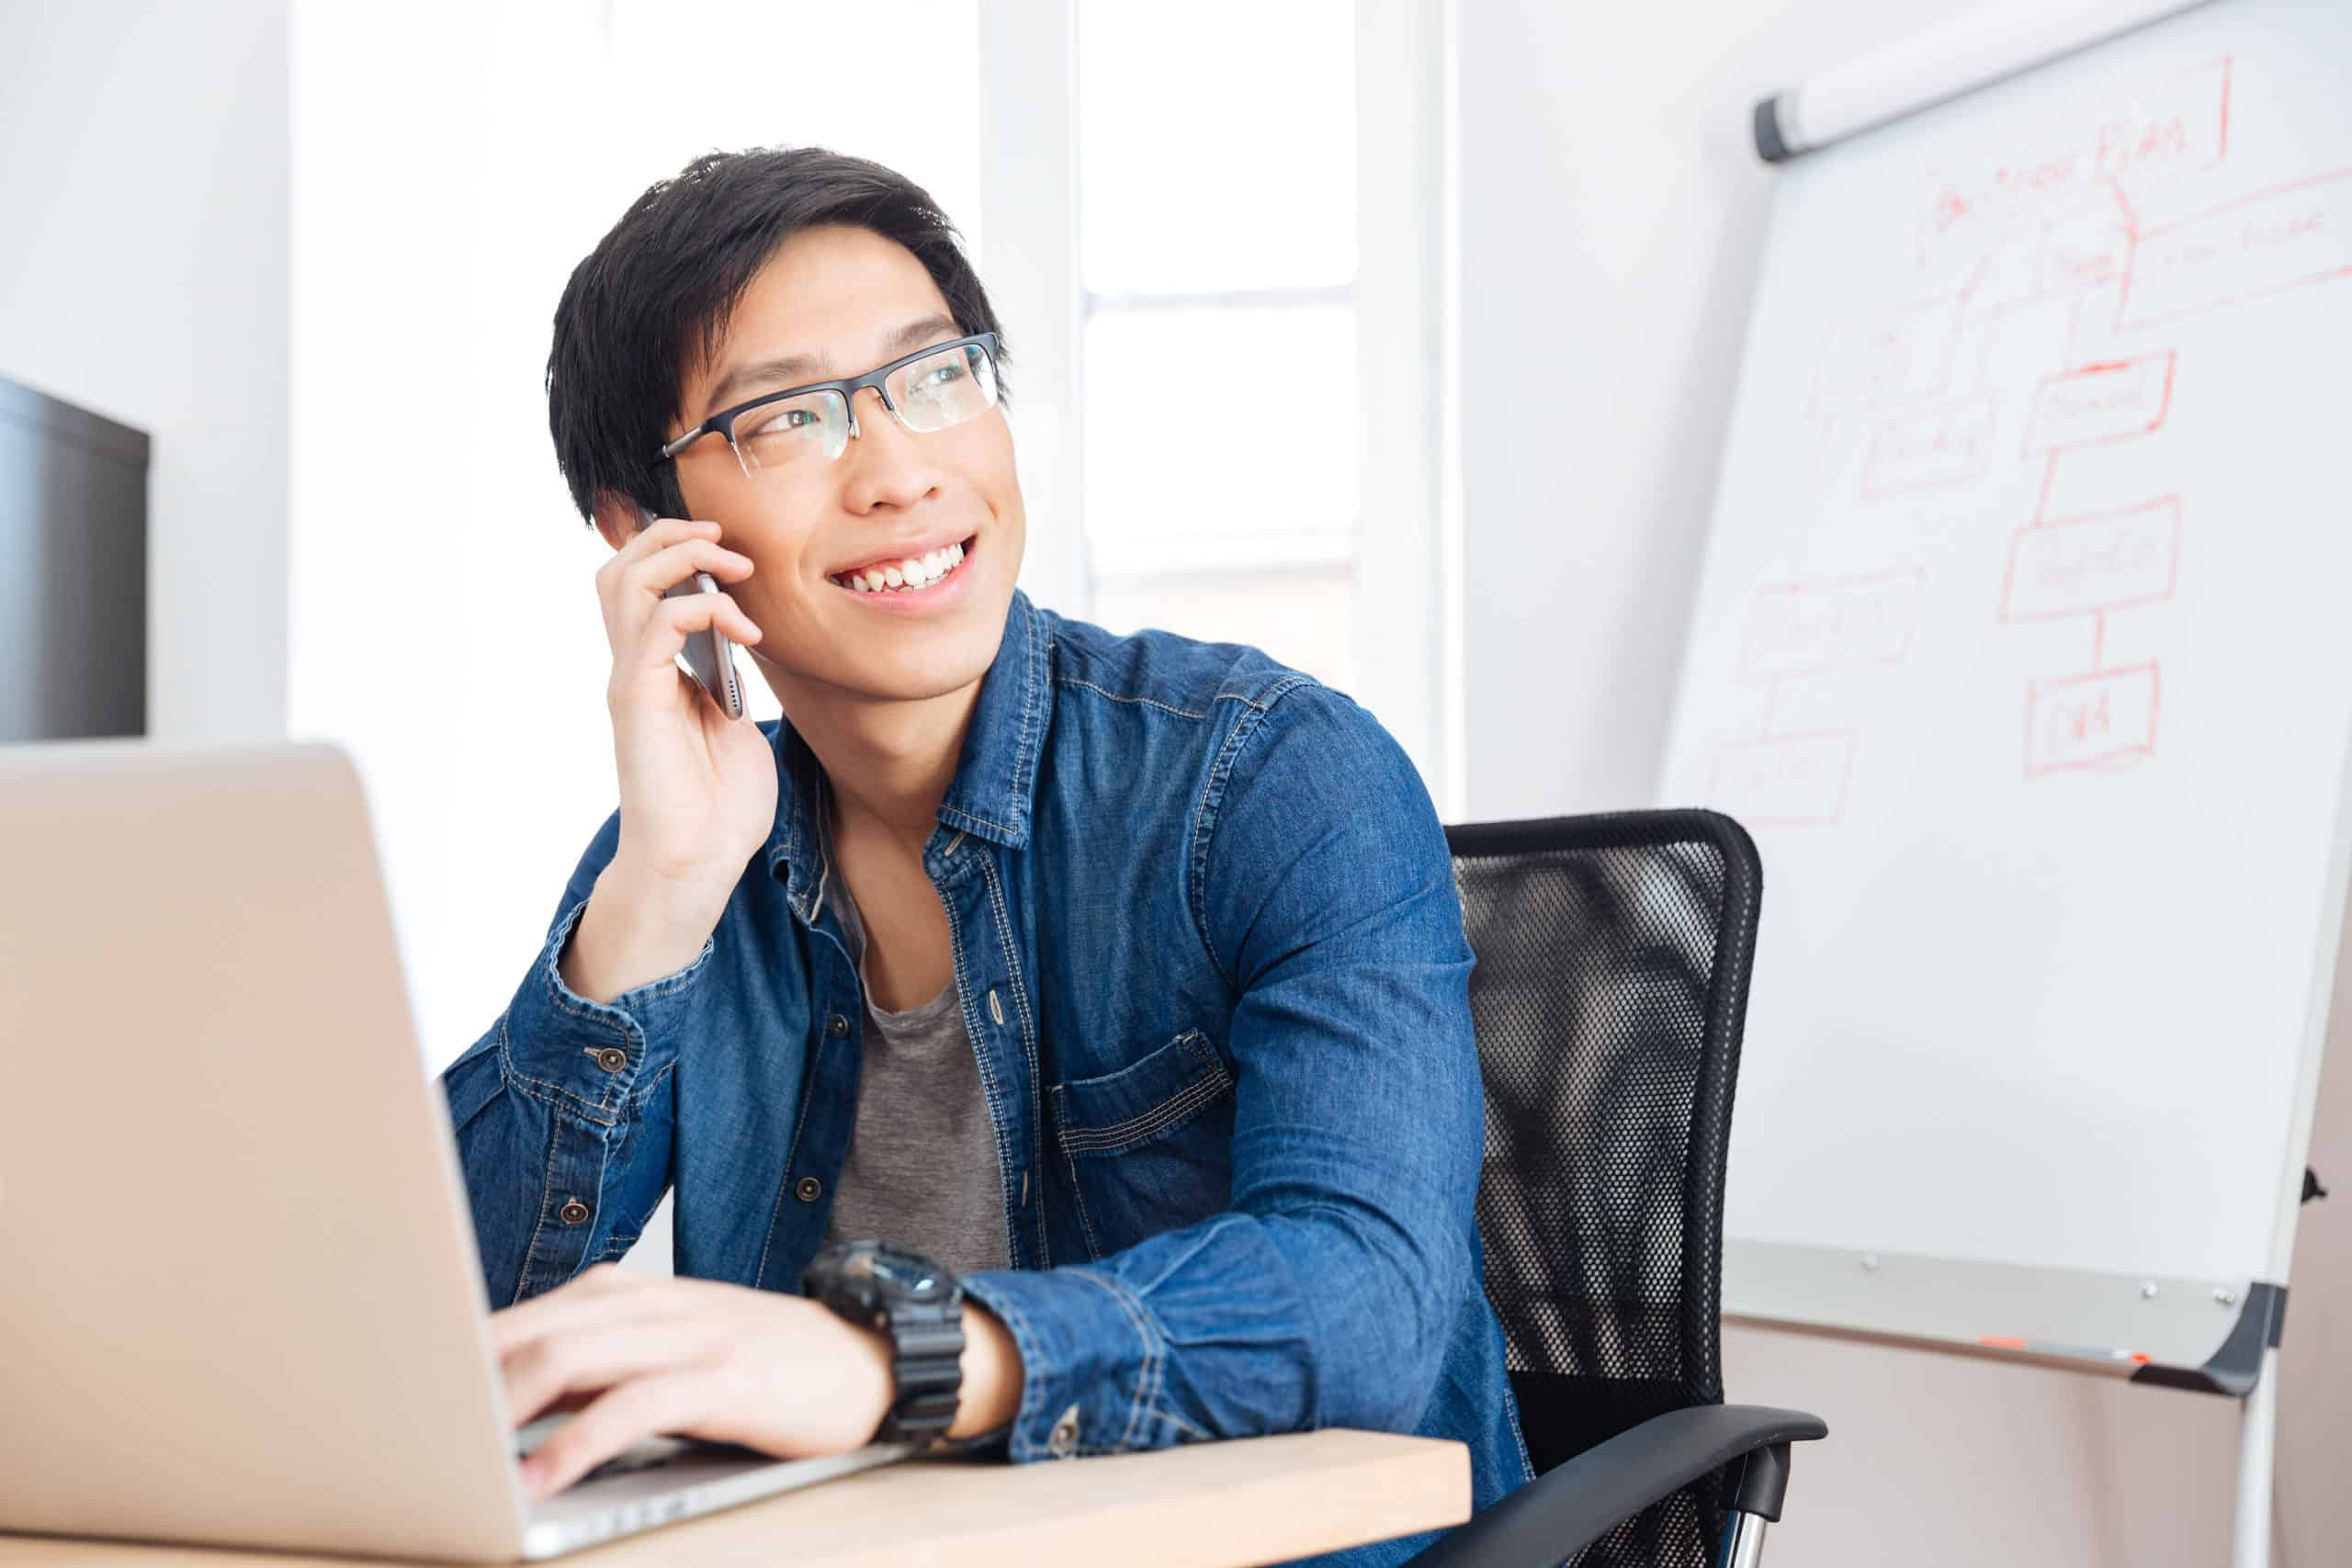 Smiling young businessman with laptop talking on mobile phone